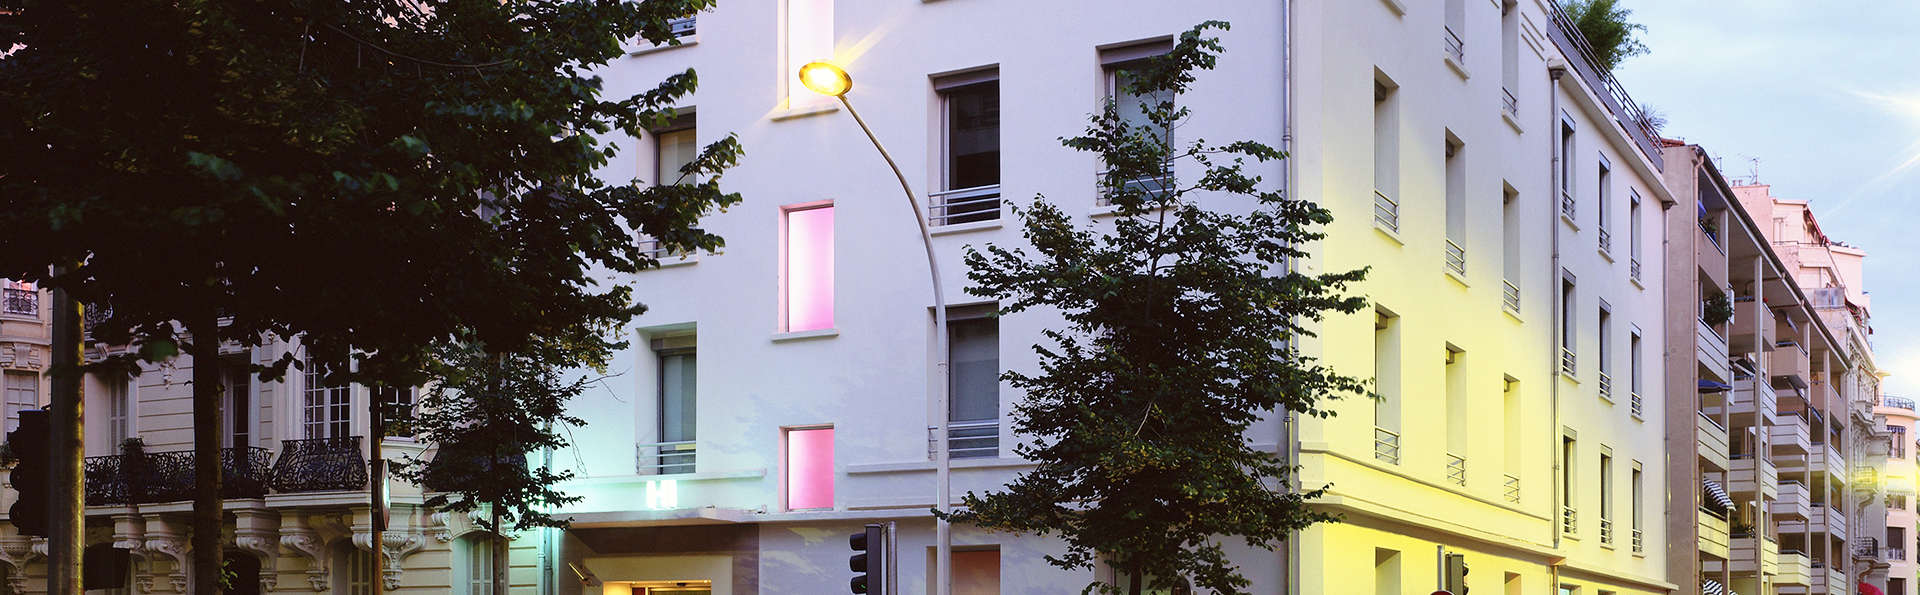 Spity hotel h tel de charme nice for Reservation hotel paca